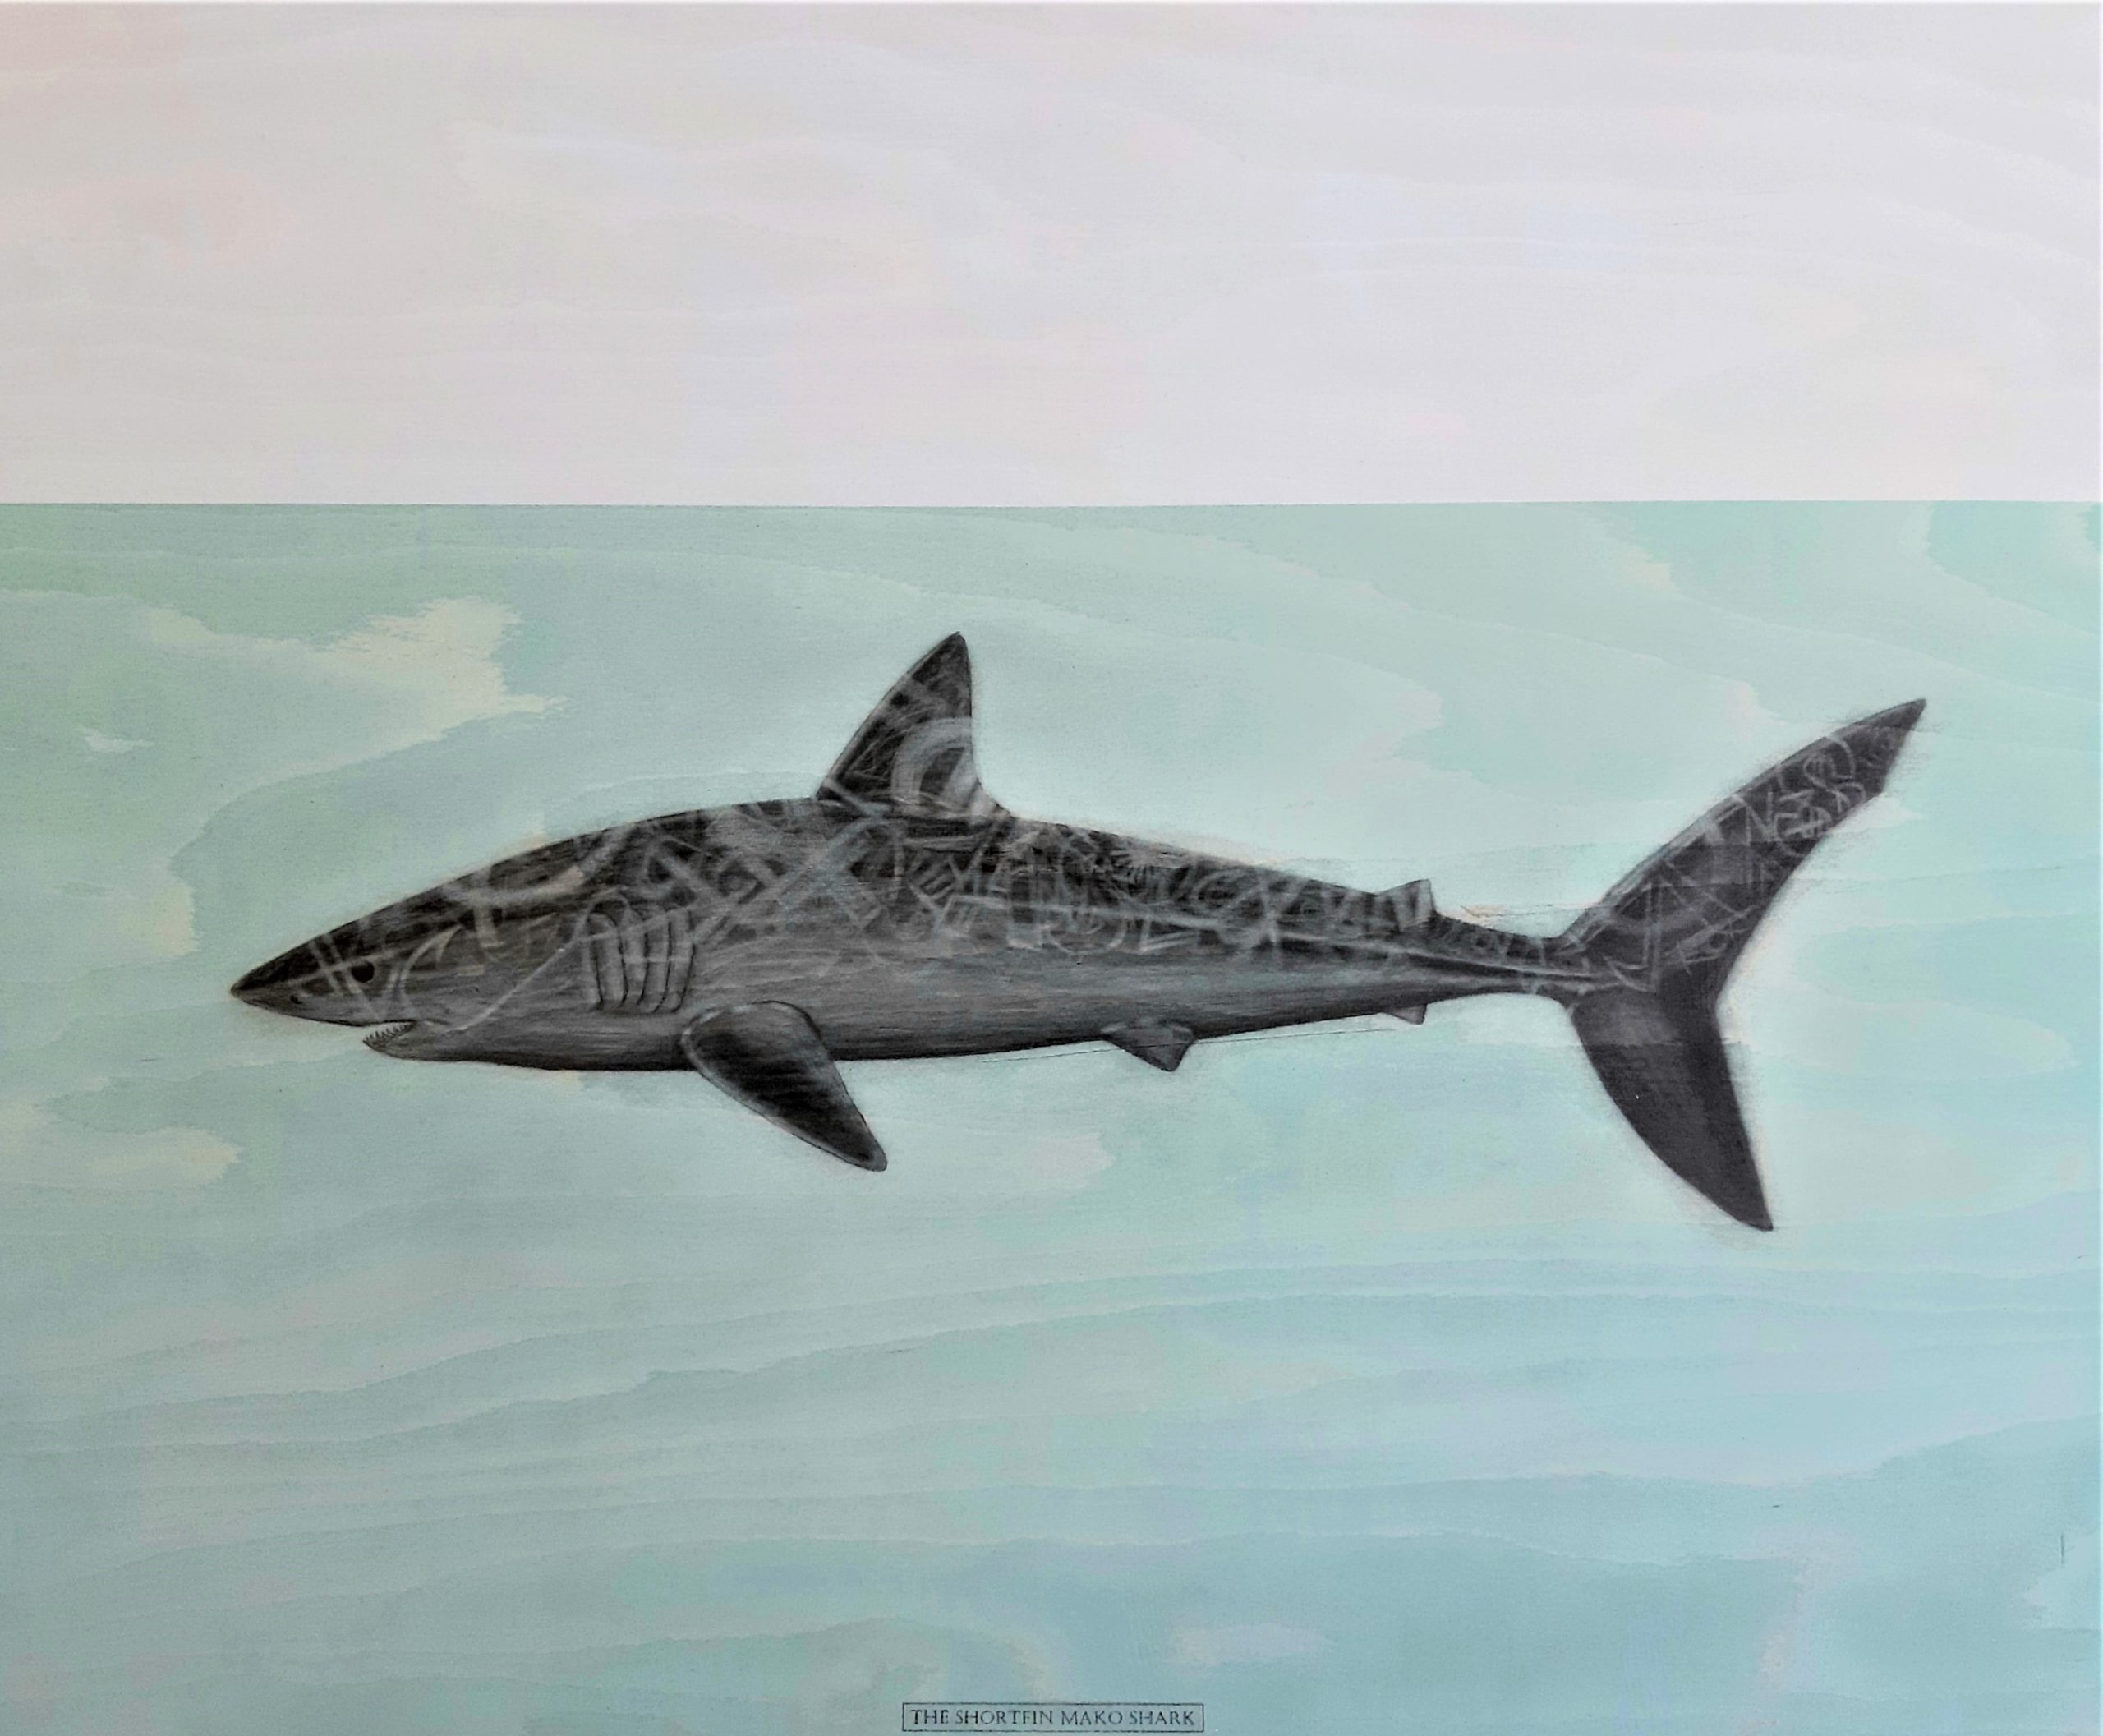 The Shortfin Mako Shark, 2020. Graphite and acrylic on plywood. Framed in white varnished obeche. 70 x 85 x 4 cm. £1,600